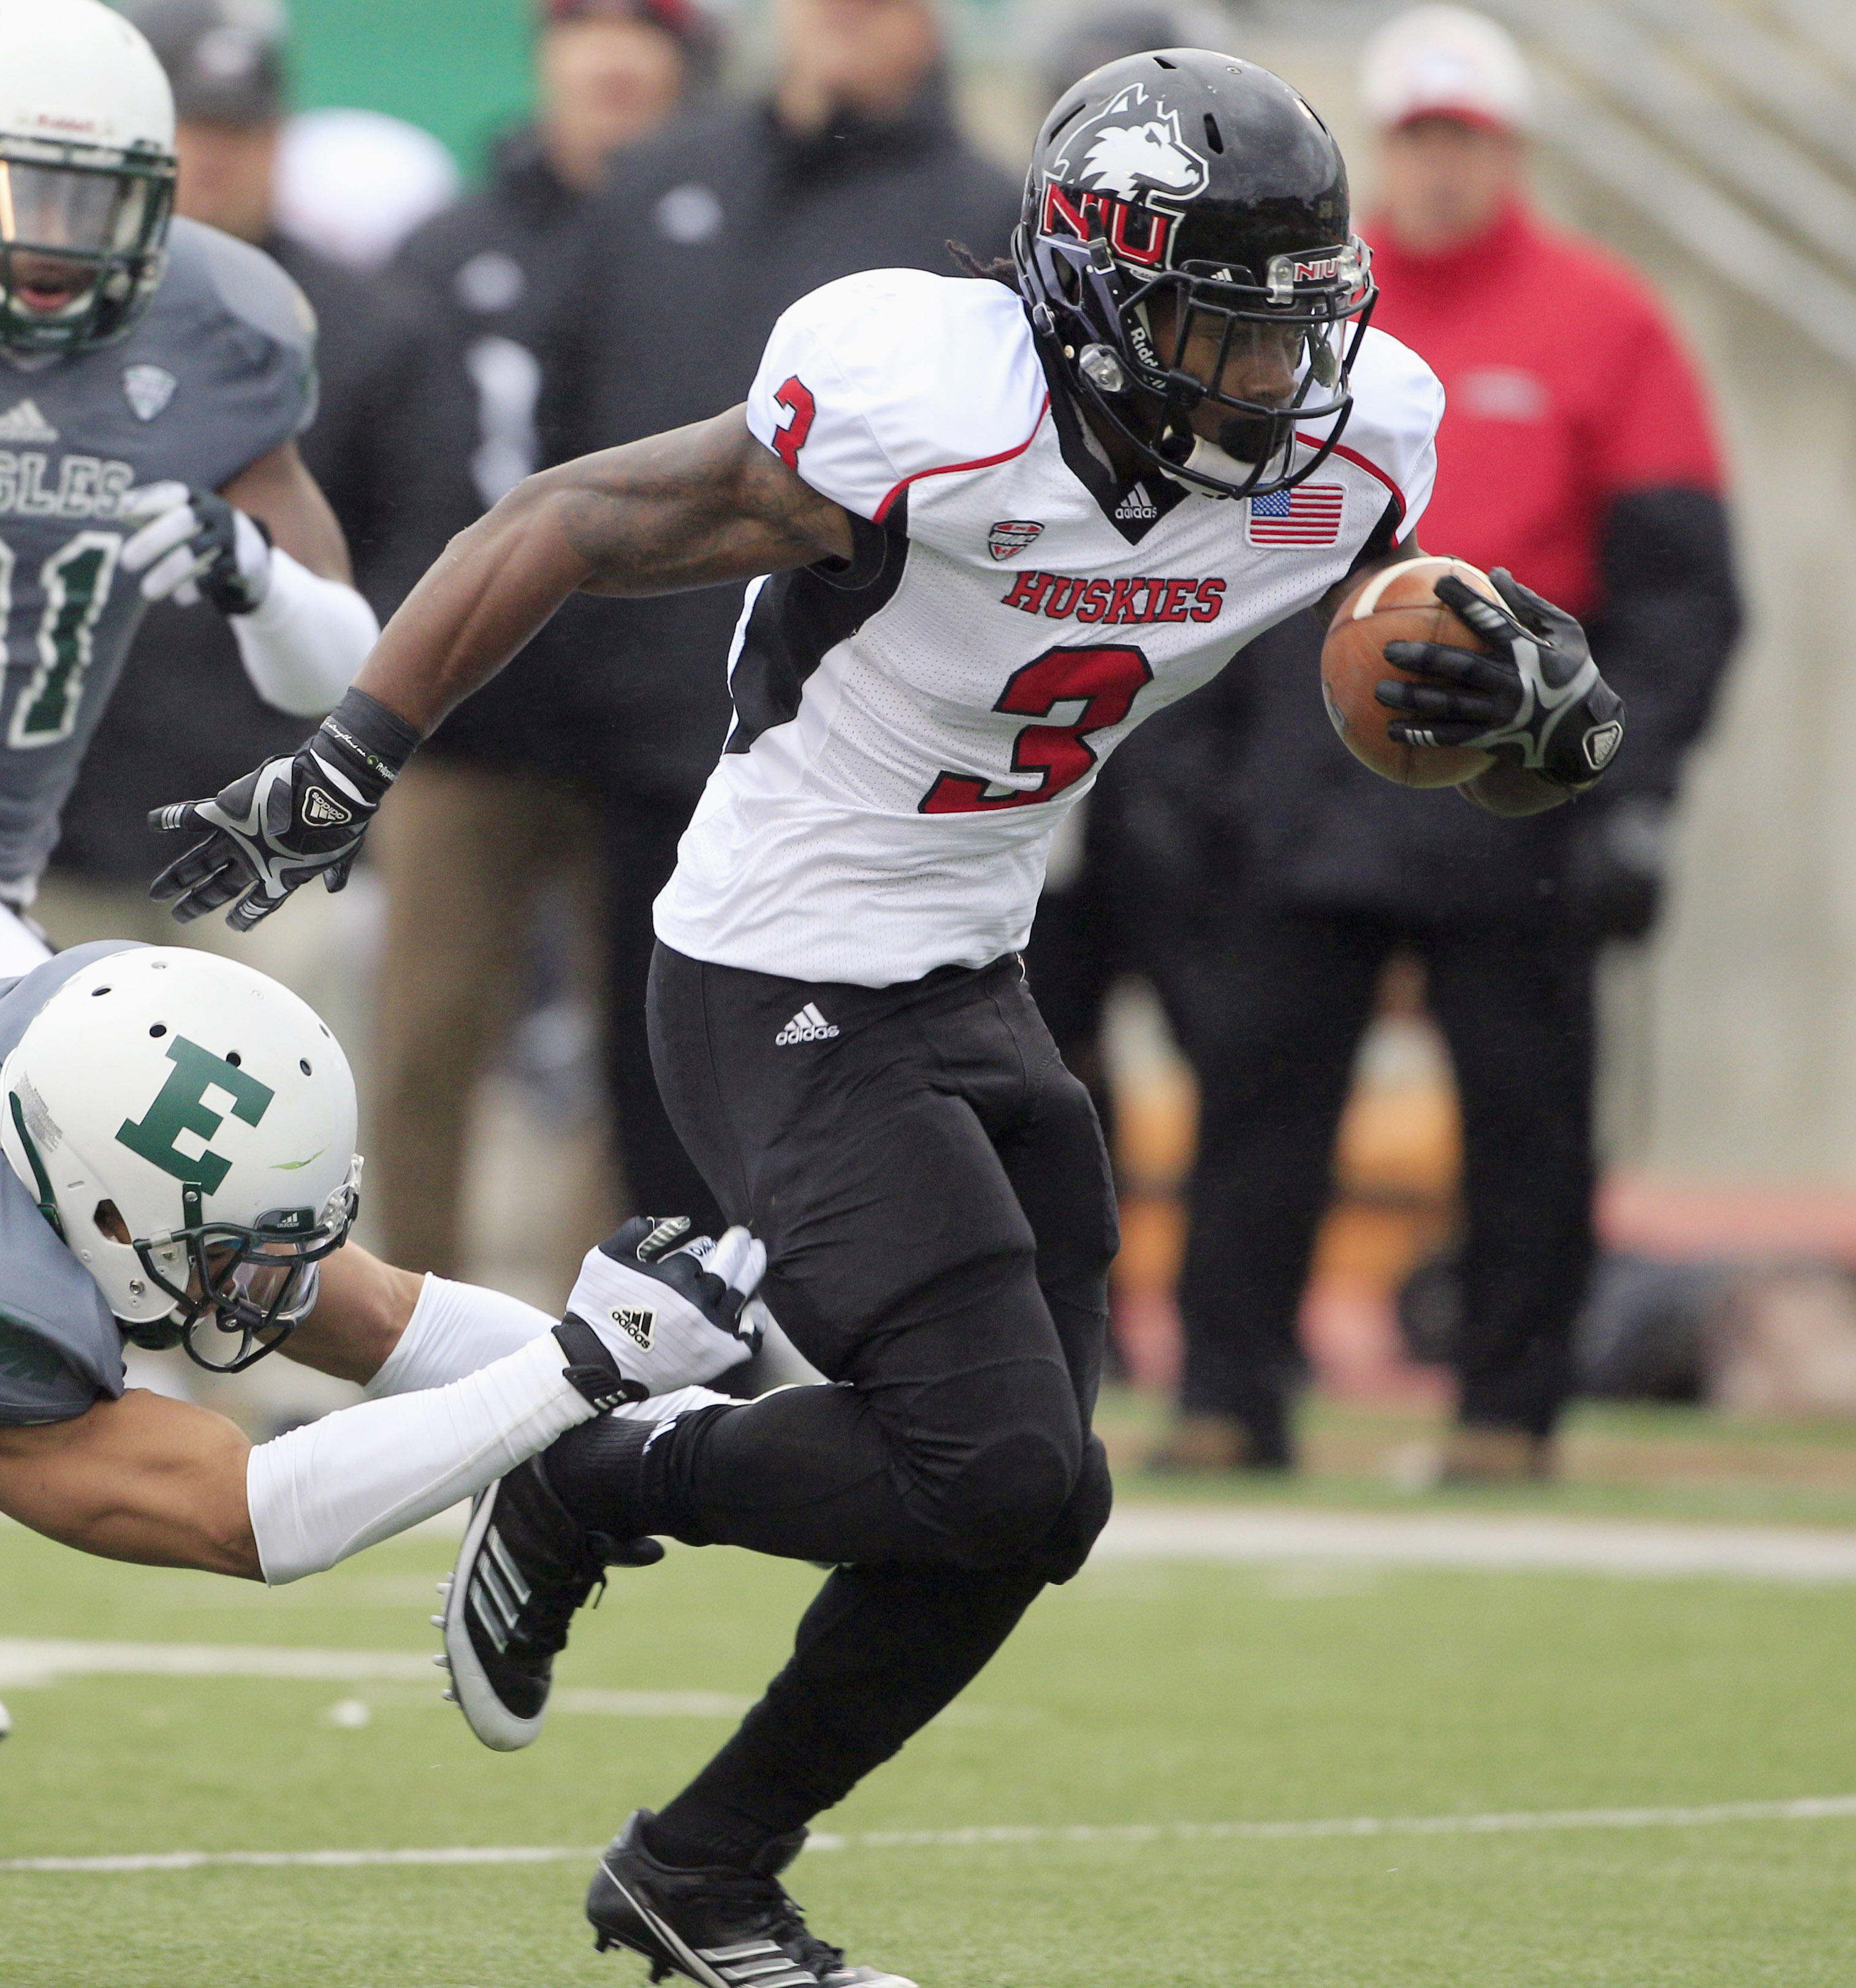 FILE - In this Nov. 23, 2012, file photo, Northern Illinois' Akeem Daniels (3) breaks a tackle during an NCAA college football game against Eastern Michigan in Ypsilanti, Mich. The former NIU running back filed a lawsuit in Chicago, Wednesday, Jan. 27, 20